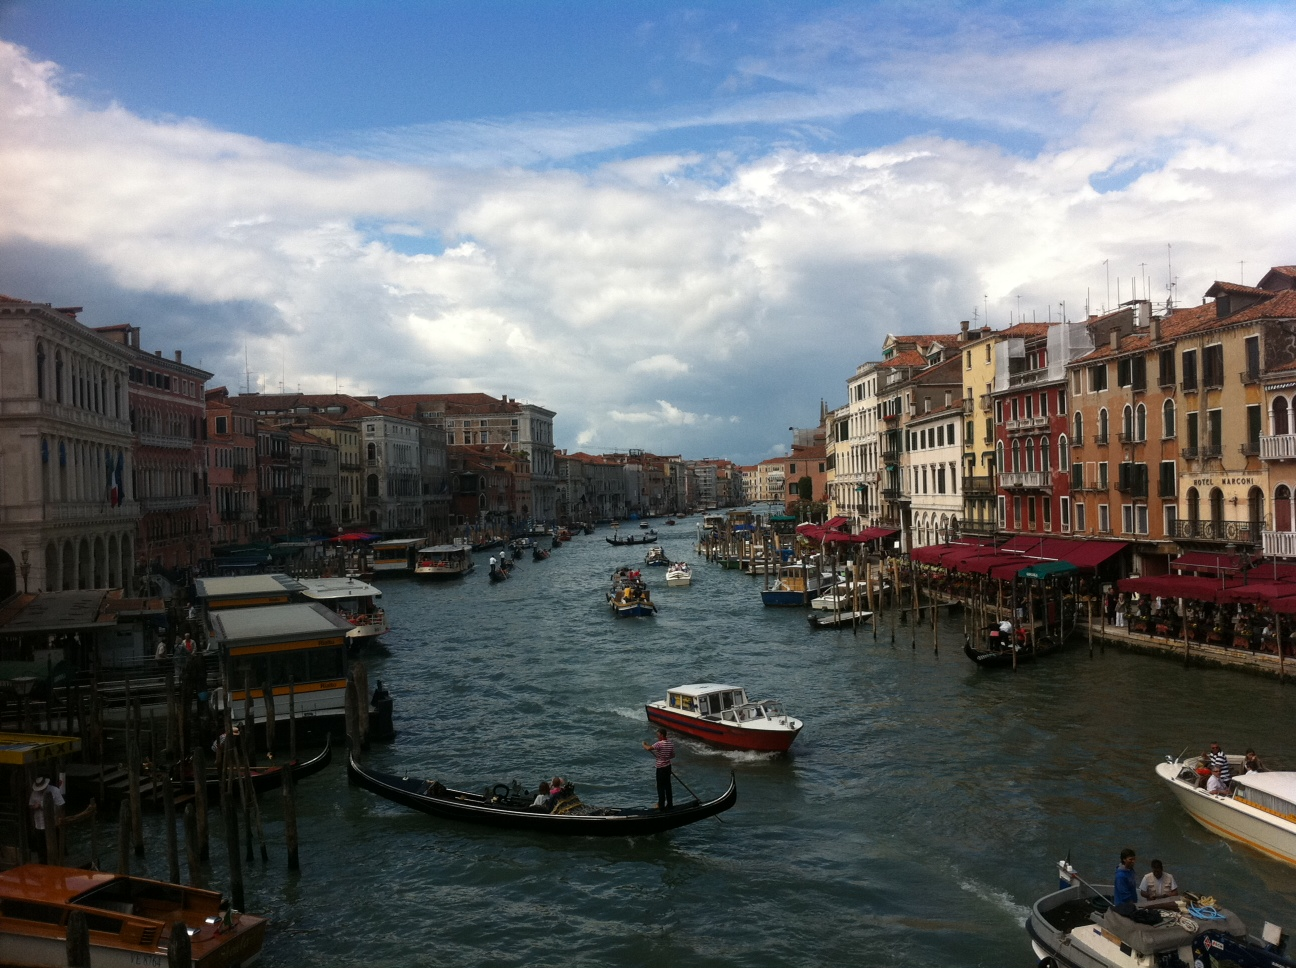 I snapped this photo from the top of the Venice's Rialto bridge with an iPhone 4S. It took all of 15 seconds to take it and then send it to friends around the world.